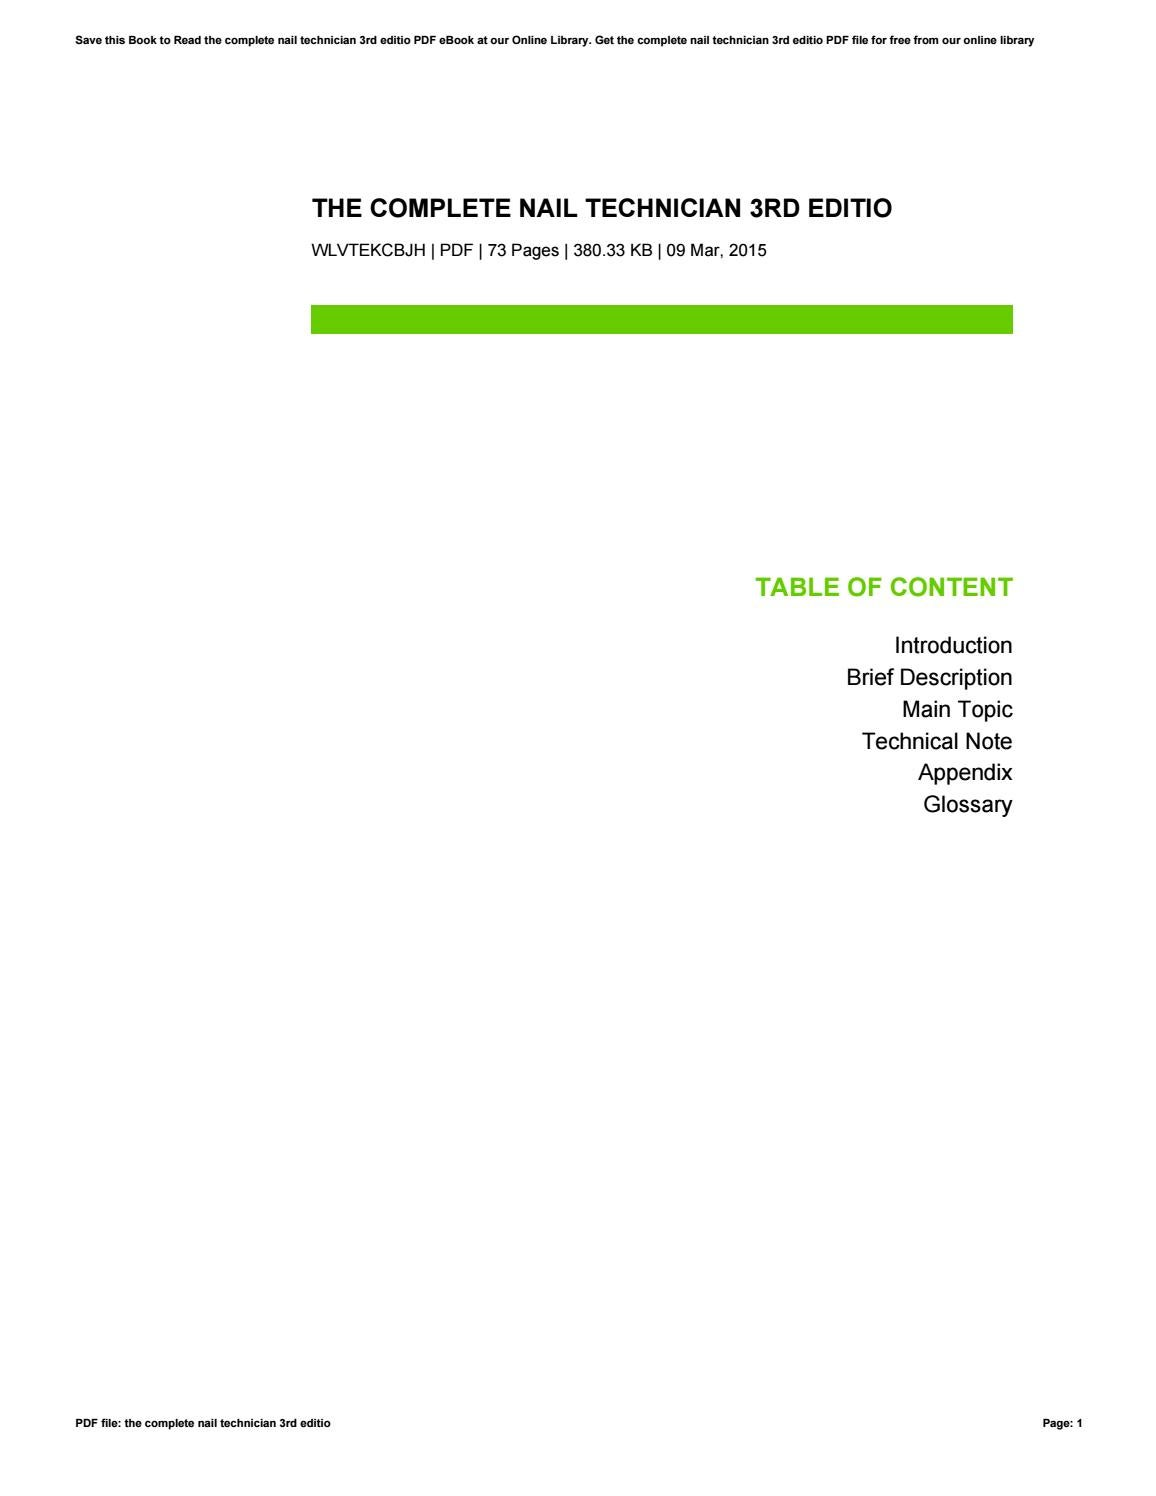 The Complete Nail Technician 3rd Editio By Xf77 Issuu